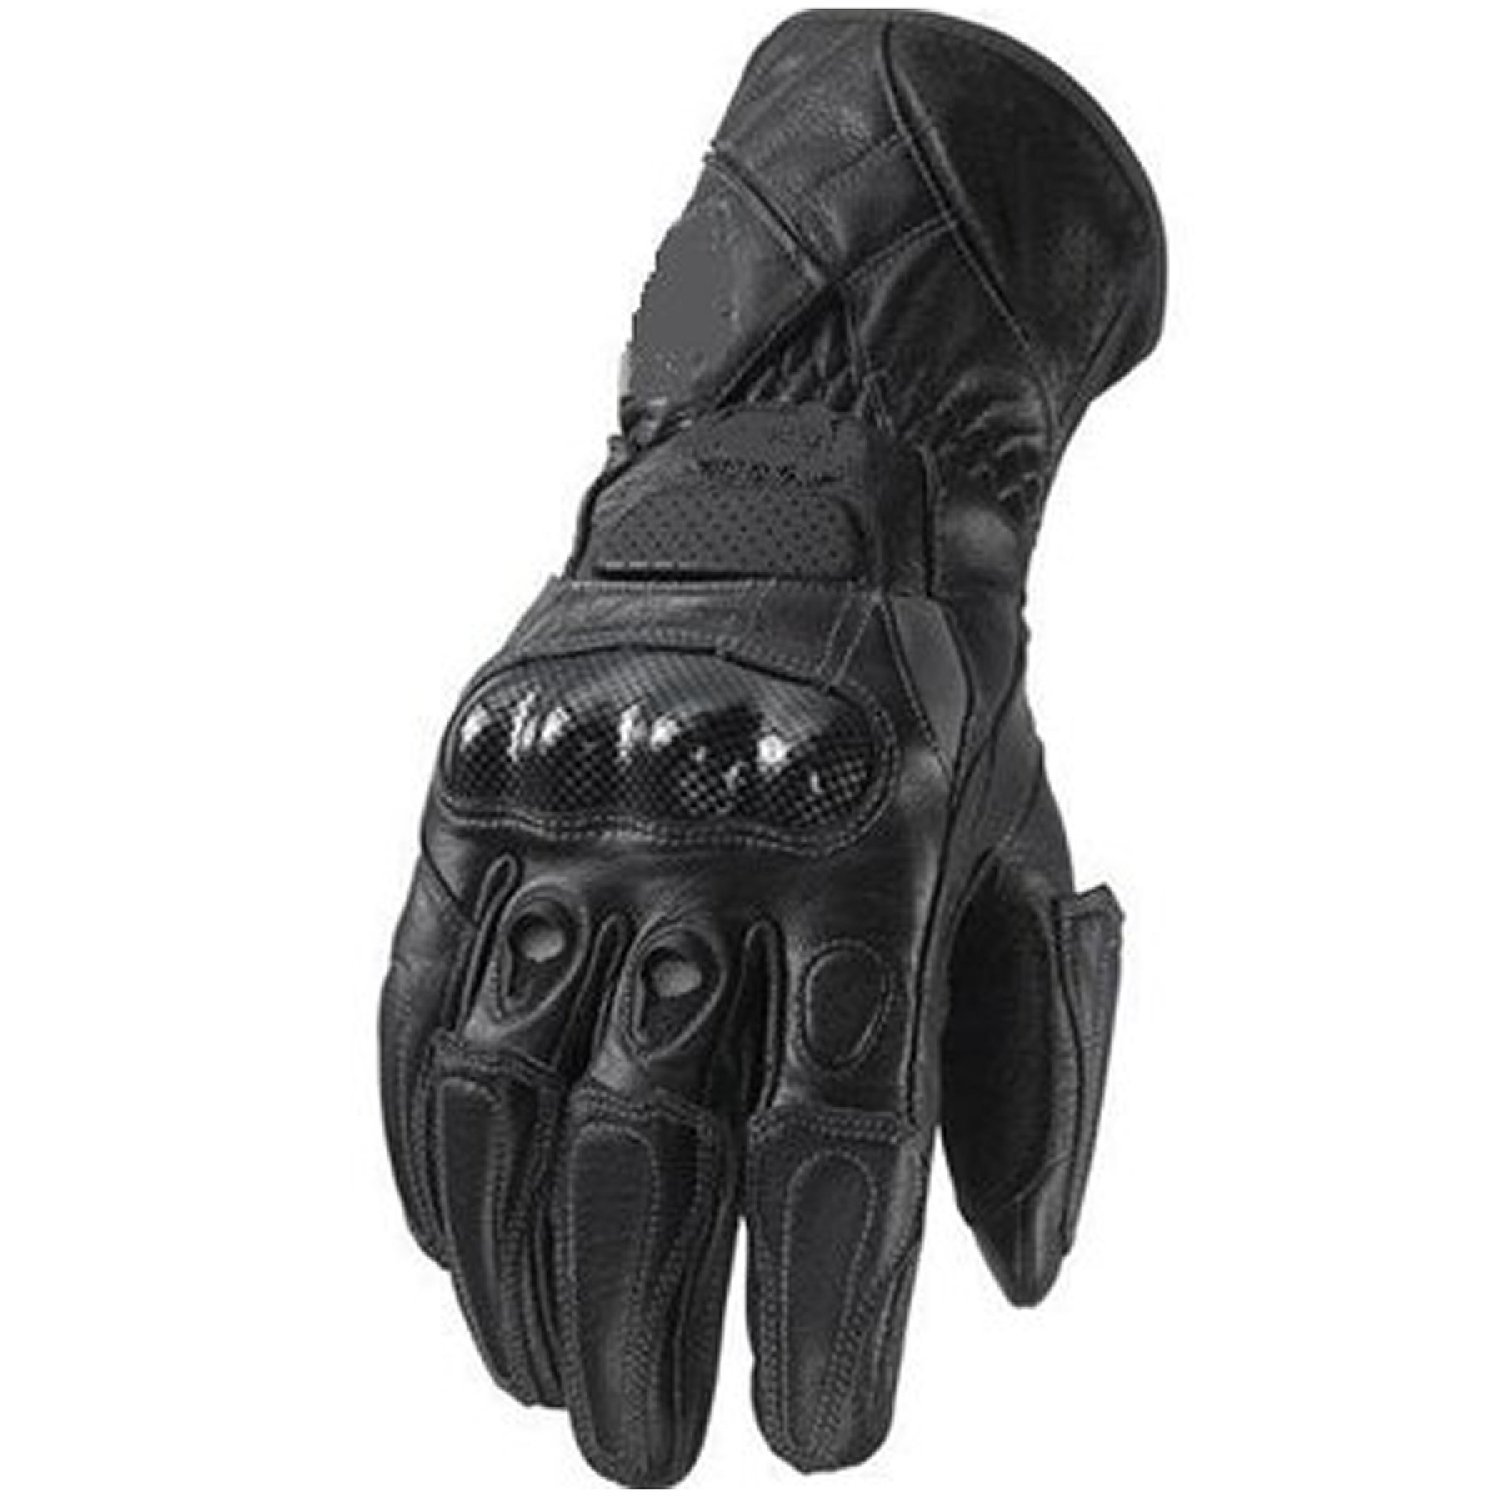 Motorcycle gloves smell - Juicy Trendz Biker Cowhide Leather Motorbike Motorcycle Heavy Duty Waterproof Gloves Collection